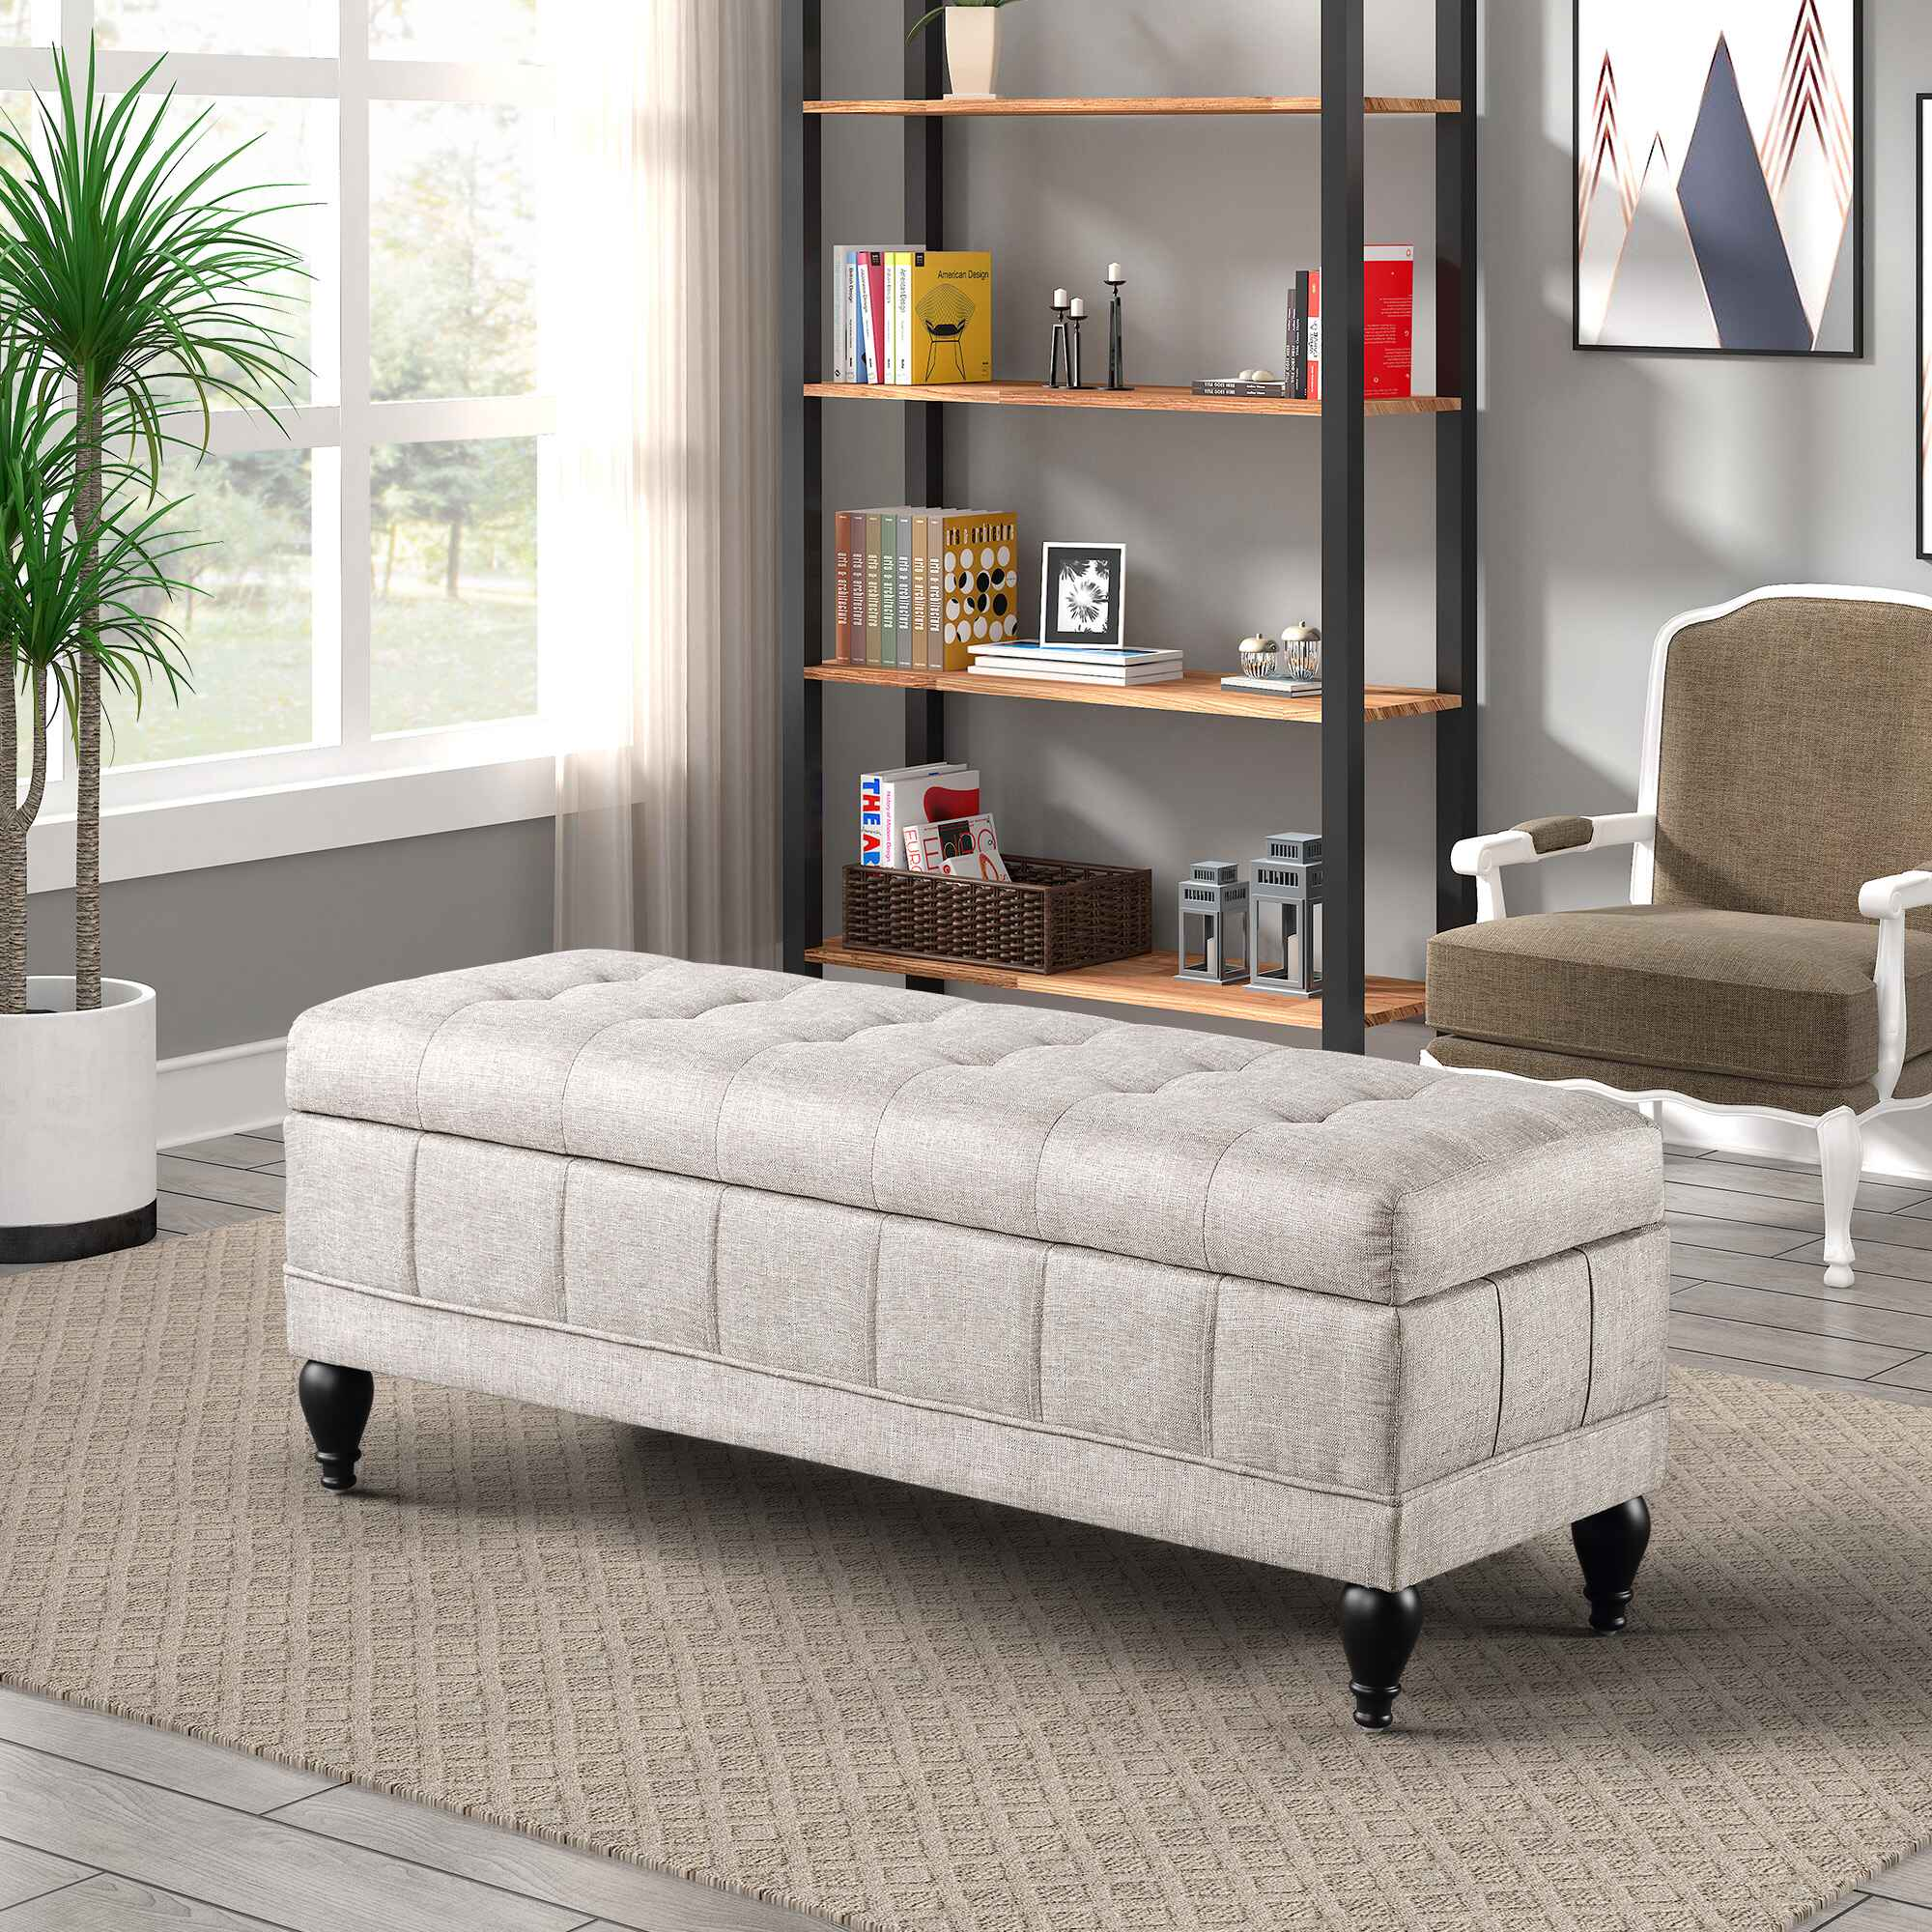 storage bench unique upholstered bedroom storage ottoman bench solid wood ottoman bench with storage flip top bedroom ottomans bench seat with